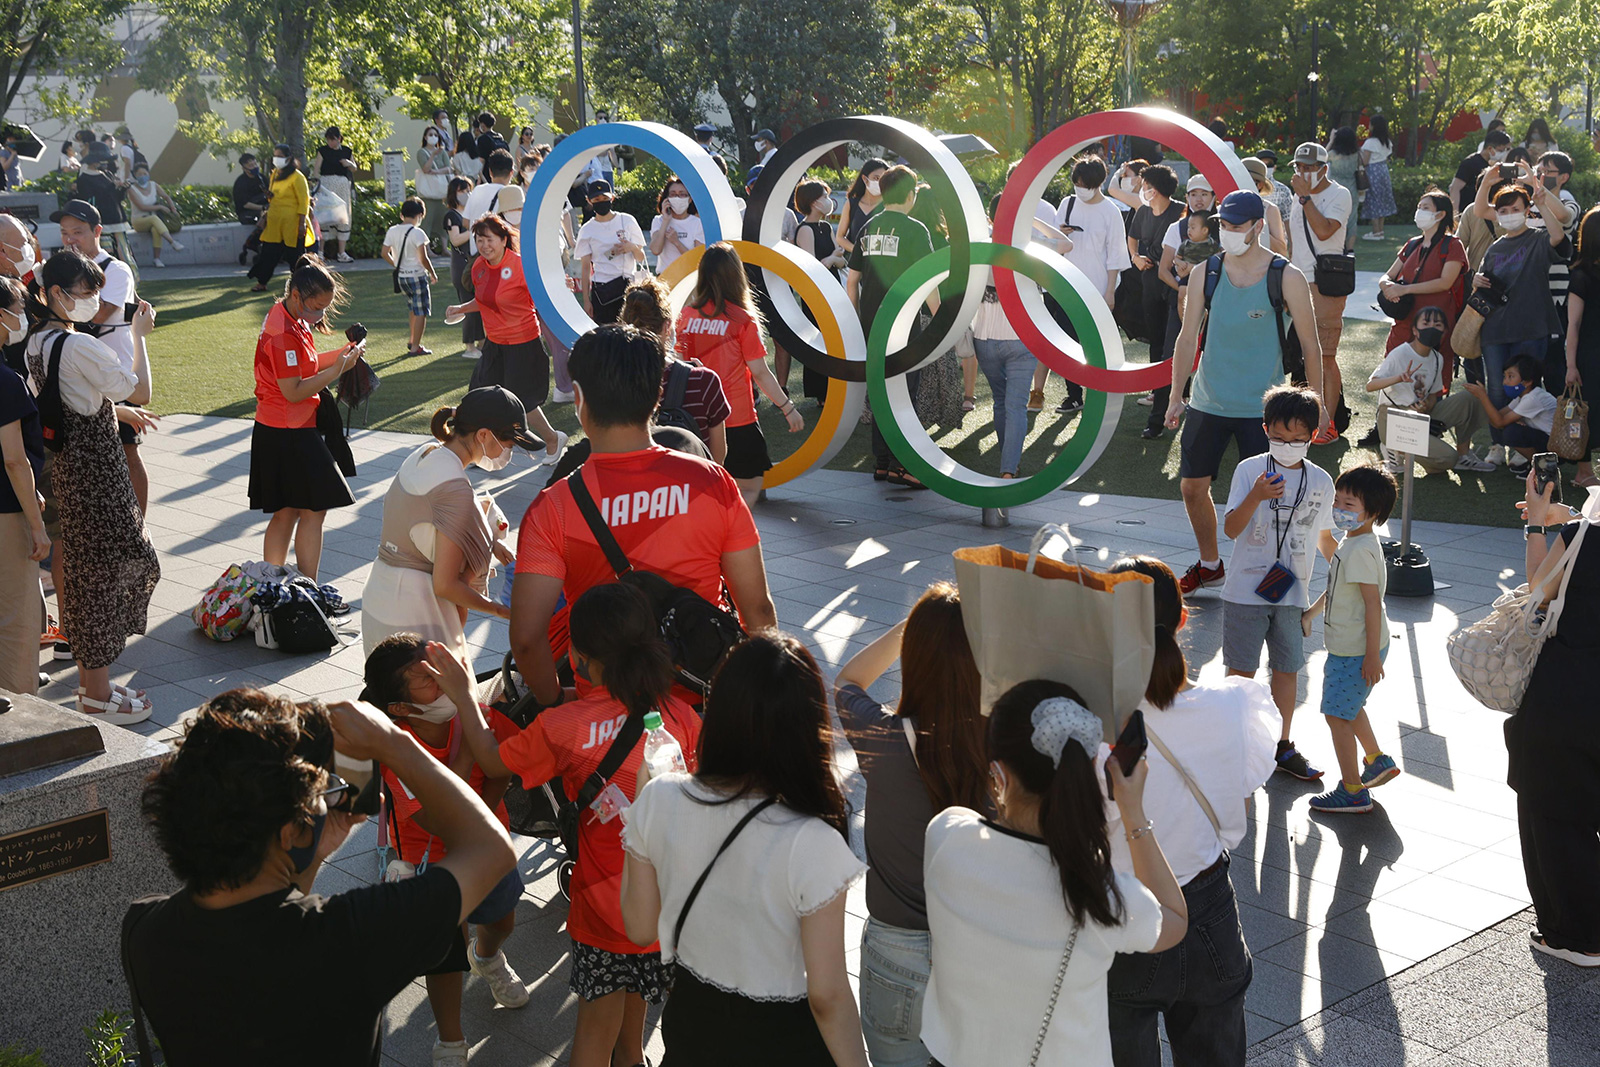 People take photos with the Olympic rings near the National Stadium in Tokyo on Saturday.